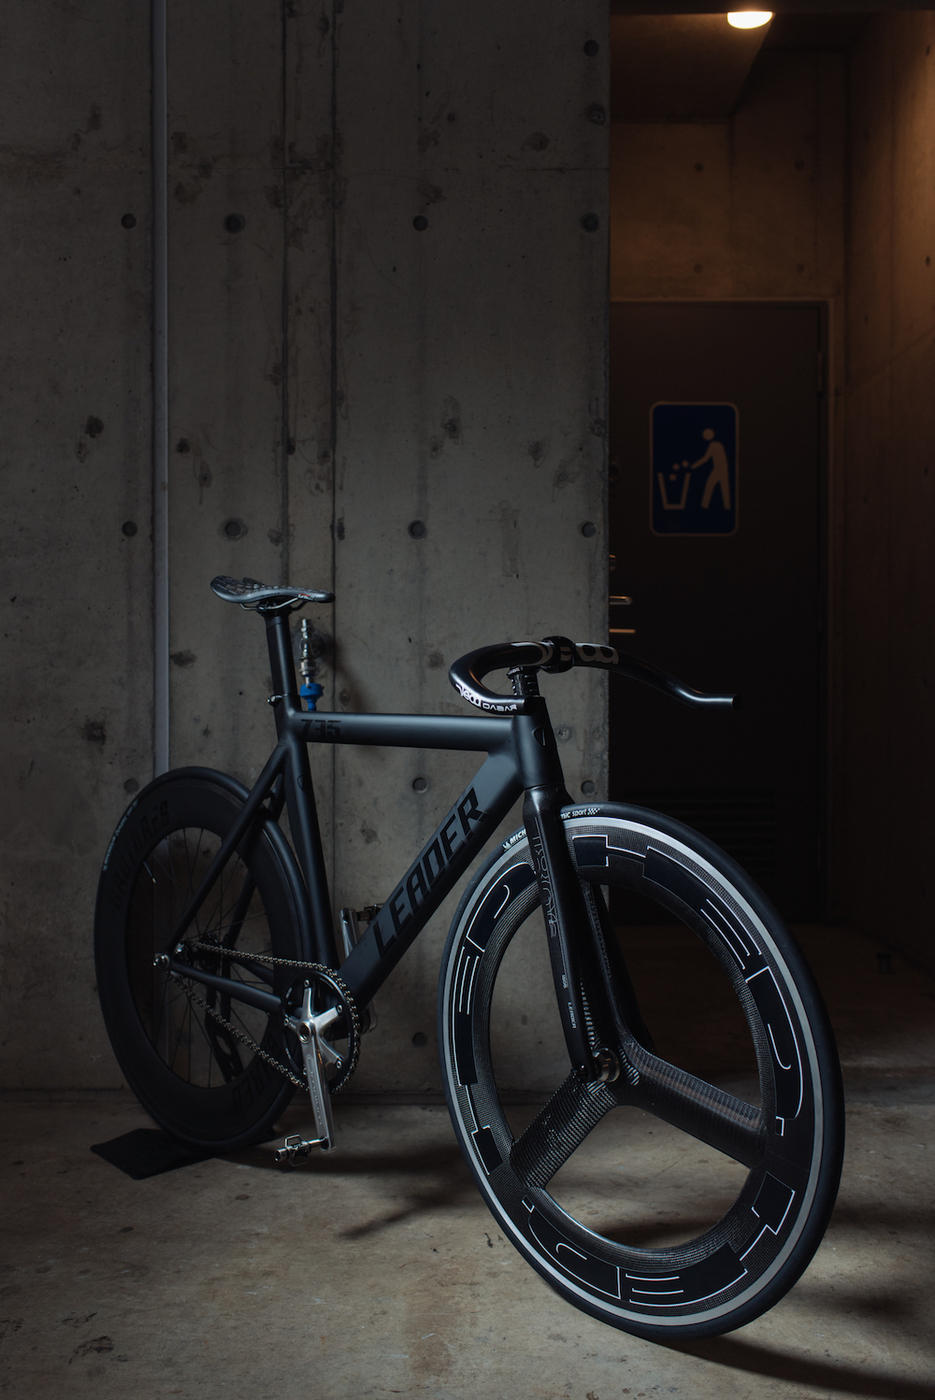 LEADER BIKES 735TR COMPLETE CUSTOM BROTURES KICHIJOJI FIXED FIXI HED H3D SHRED88 DABAR DEDA TIOGA SPYDER TWIN TAIL2